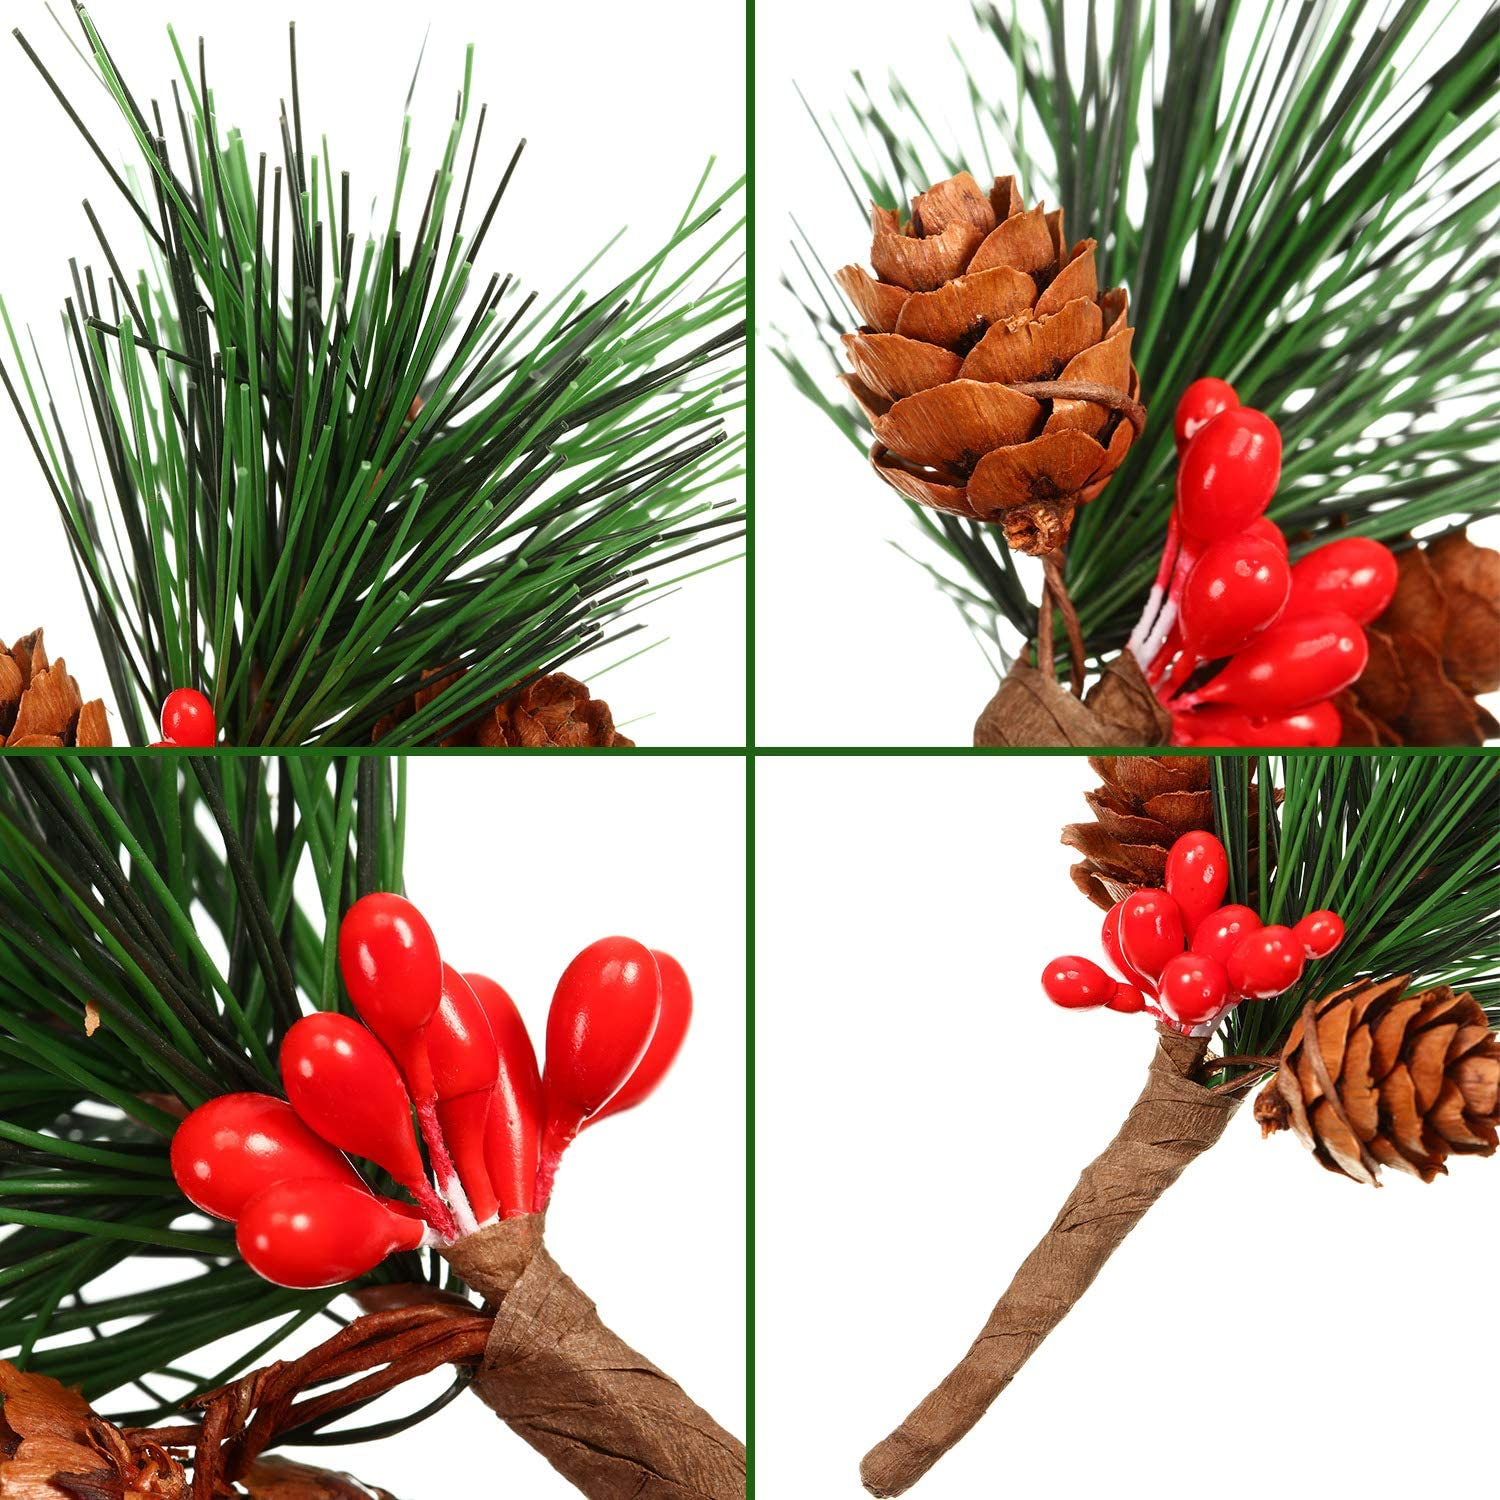 30 Pieces Artificial Pine Picks Small Pine Tree with Fake Berries for Christmas Tree Flower Arrangements Wreaths Wedding Garden Decorations